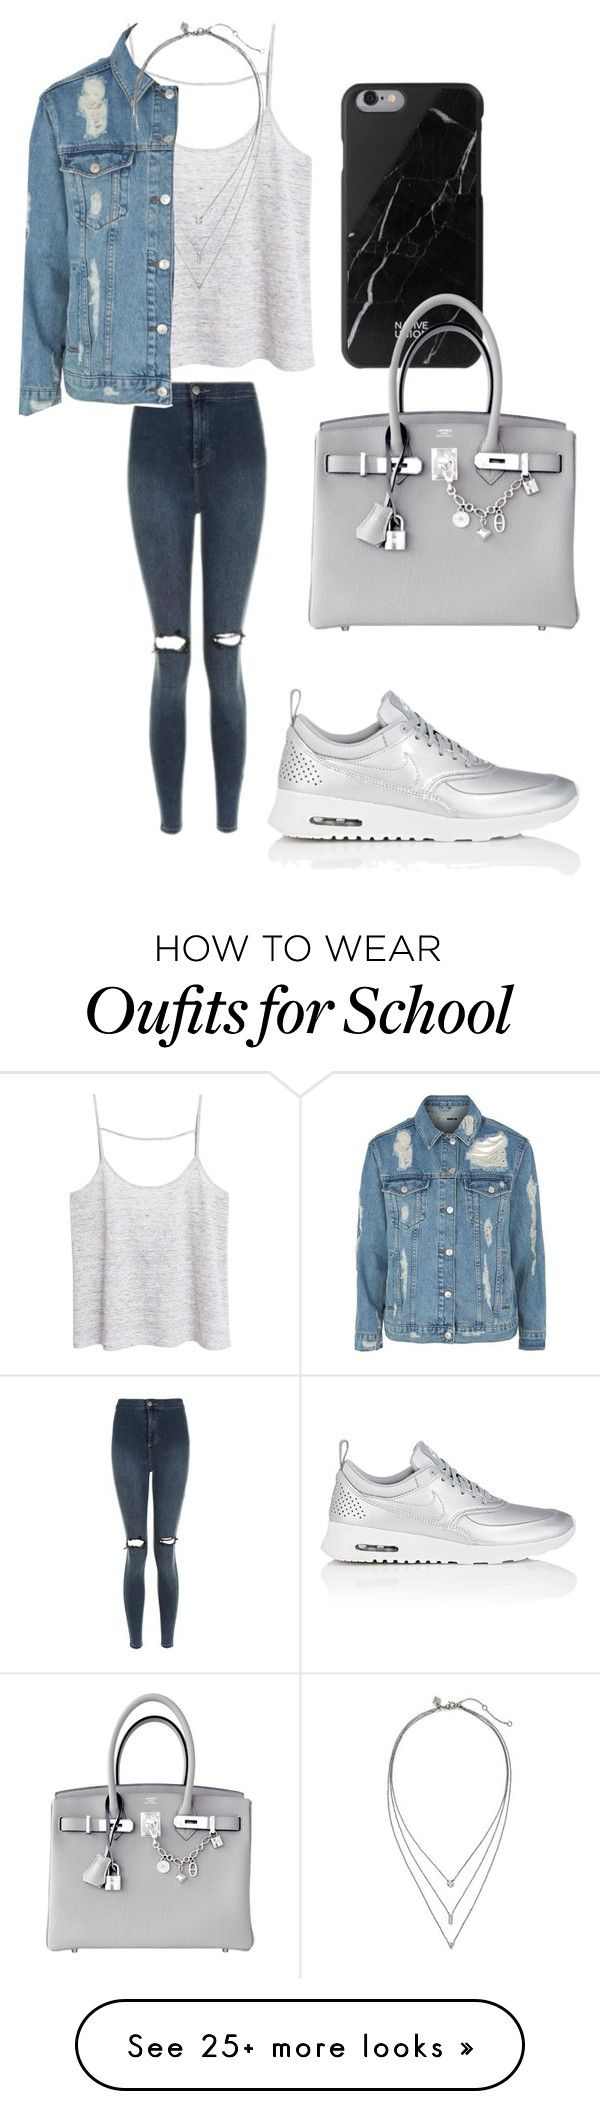 """""""Only two hours of school today"""" by sarahfohlen on Polyvore featuring MANGO, NIKE, Native Union, Topshop, Hermès, Banana Republic, Winter and 2k17"""